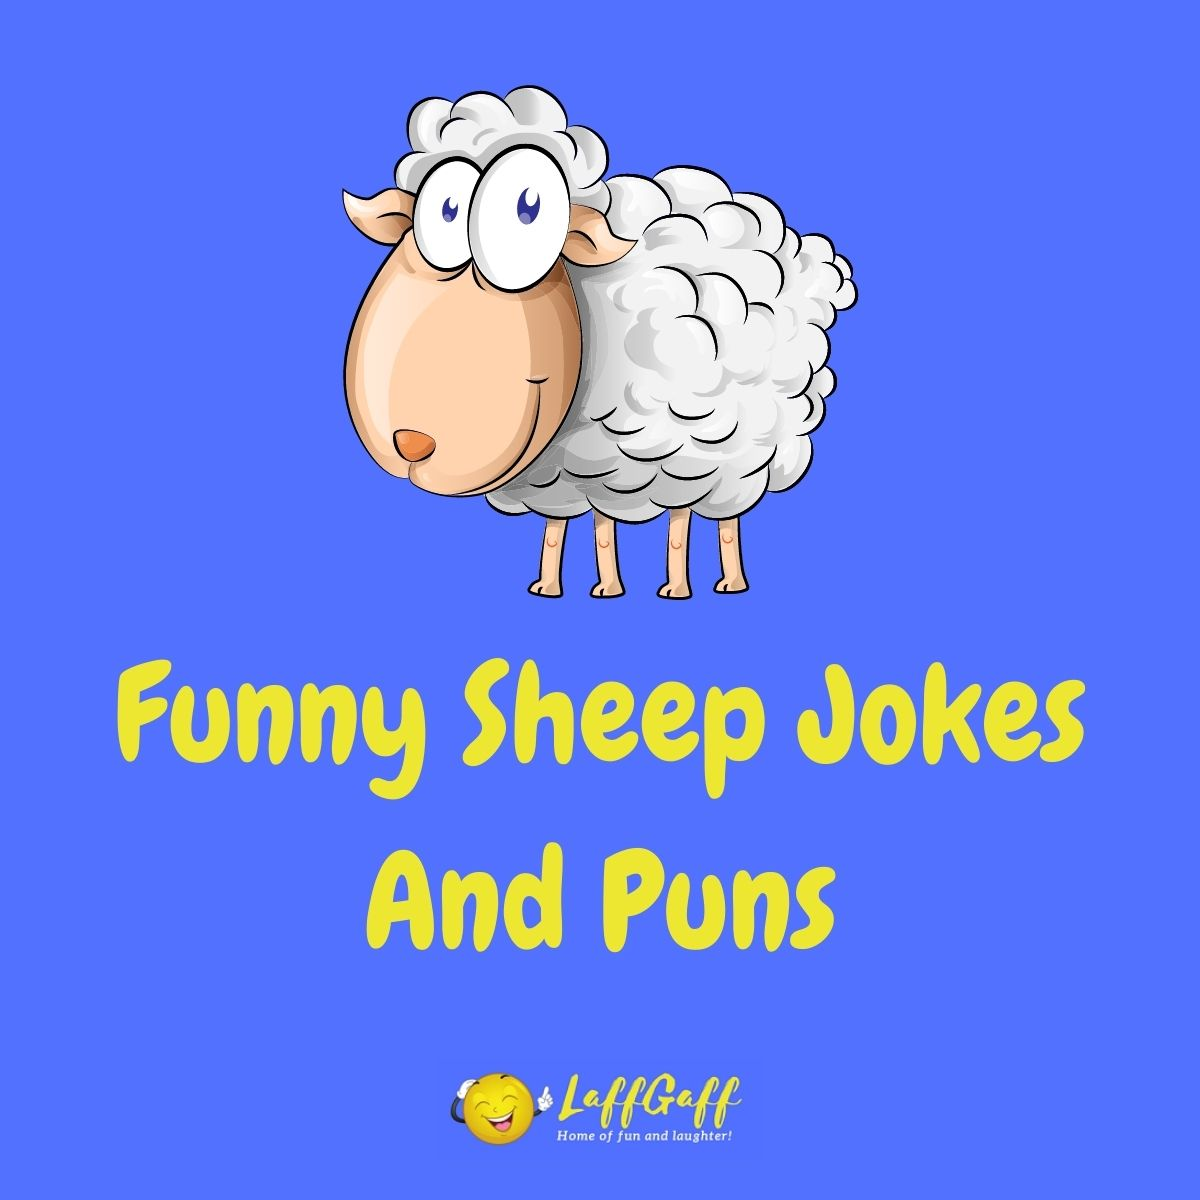 Featured image for a page of funny sheep jokes and puns.